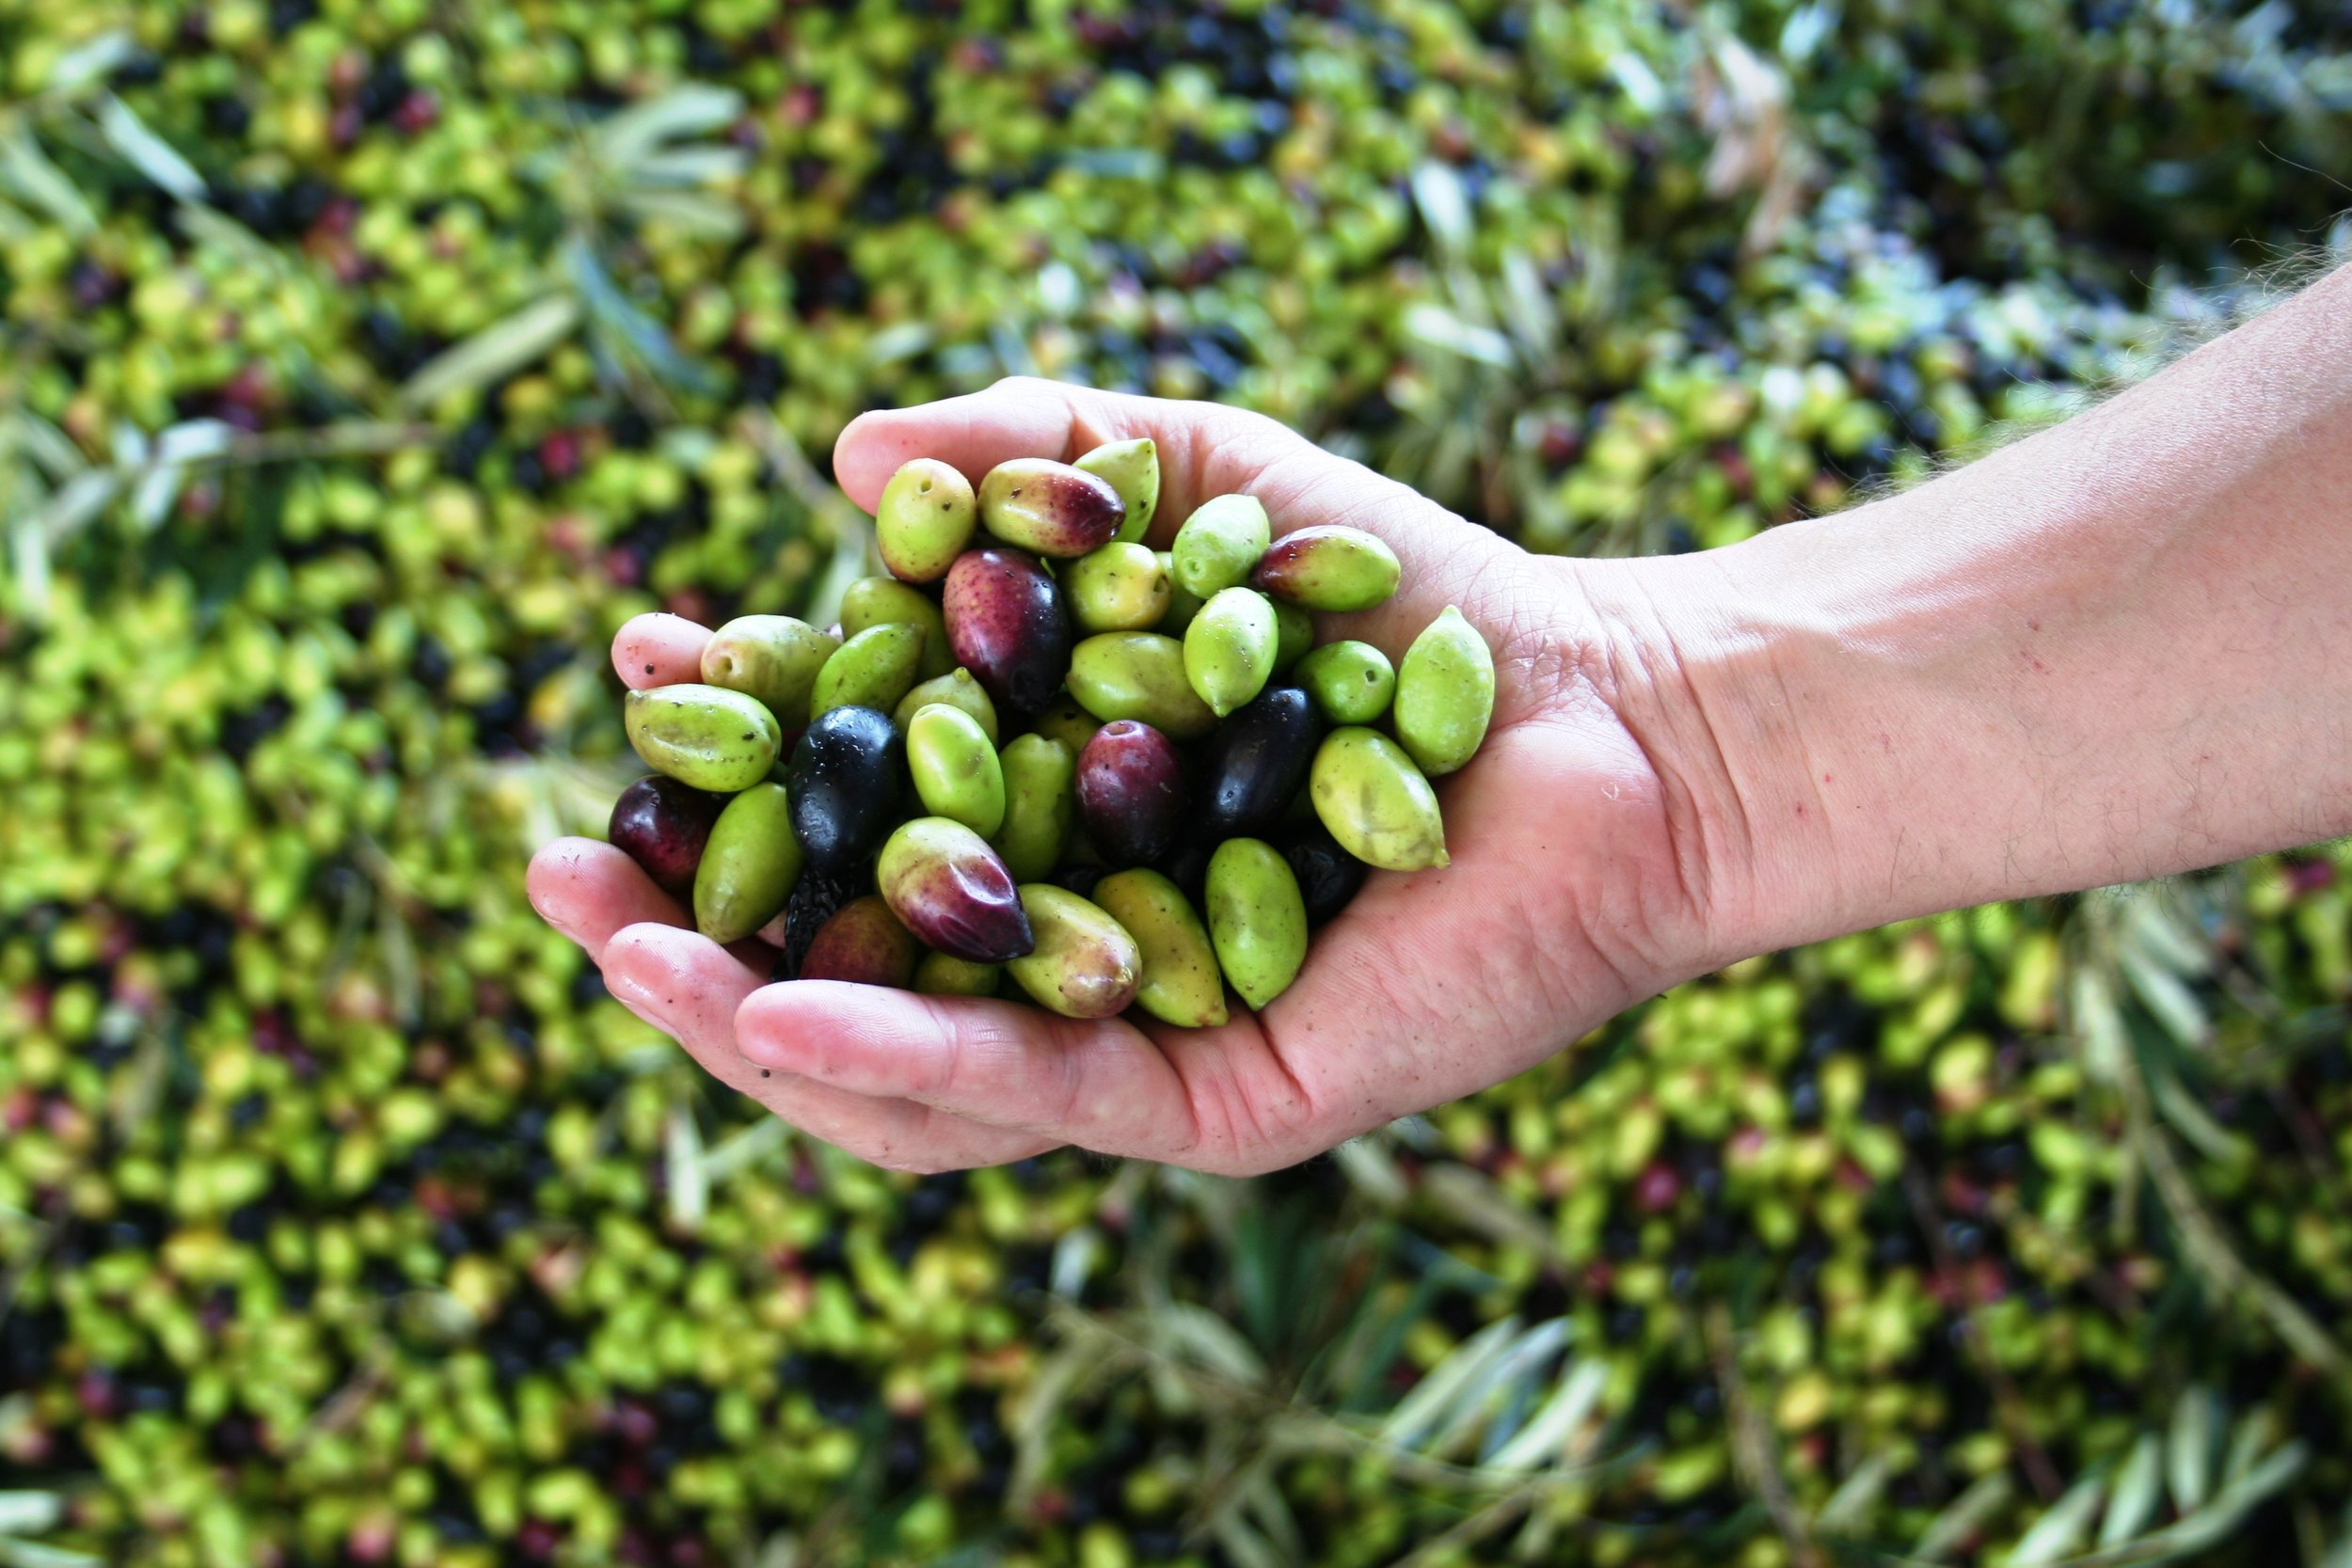 Olives in hand Aus.jpg